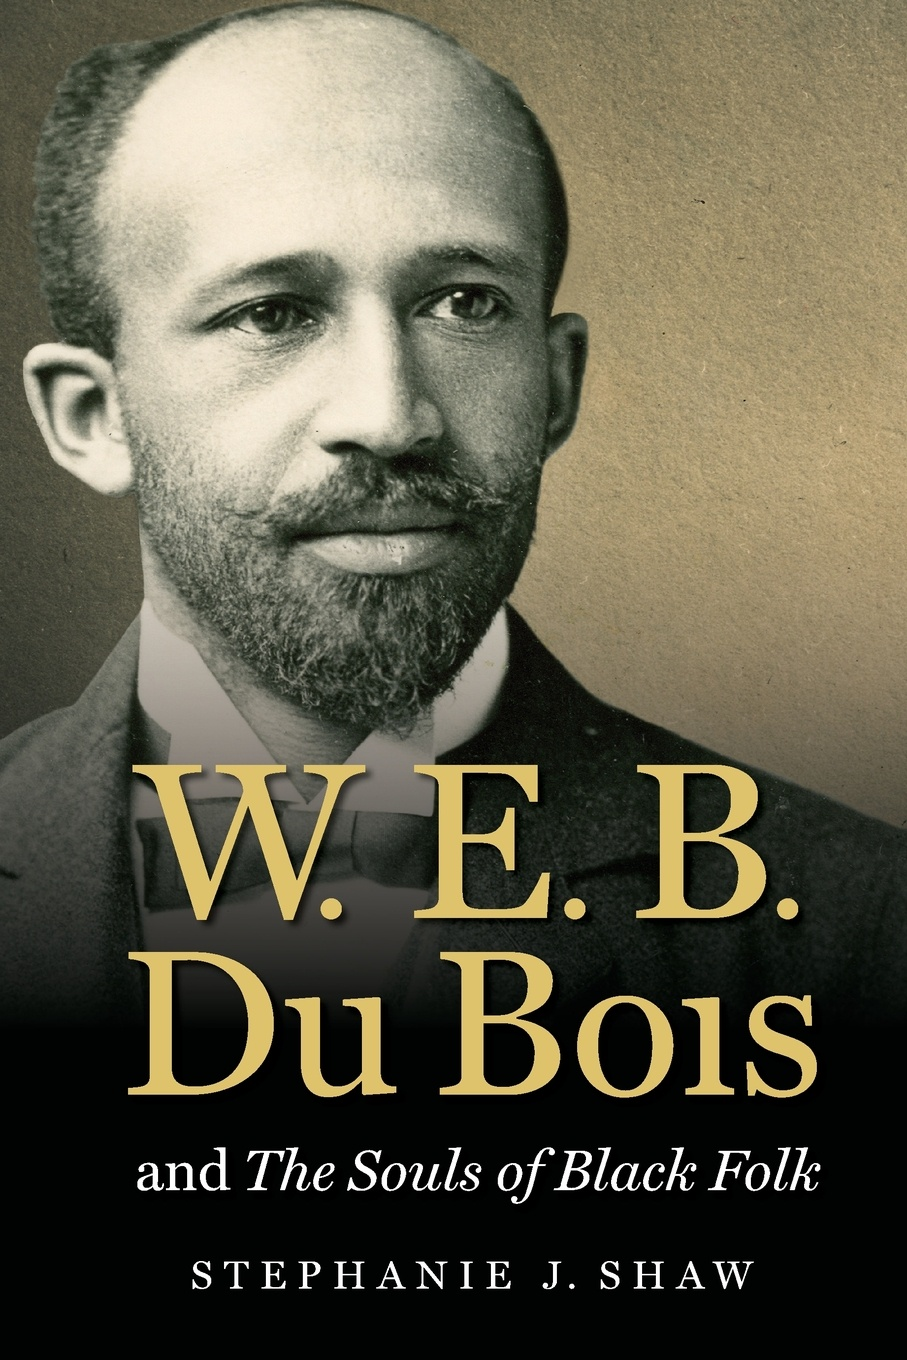 Stephanie J. Shaw W. E. B. Du Bois and The Souls of Black Folk